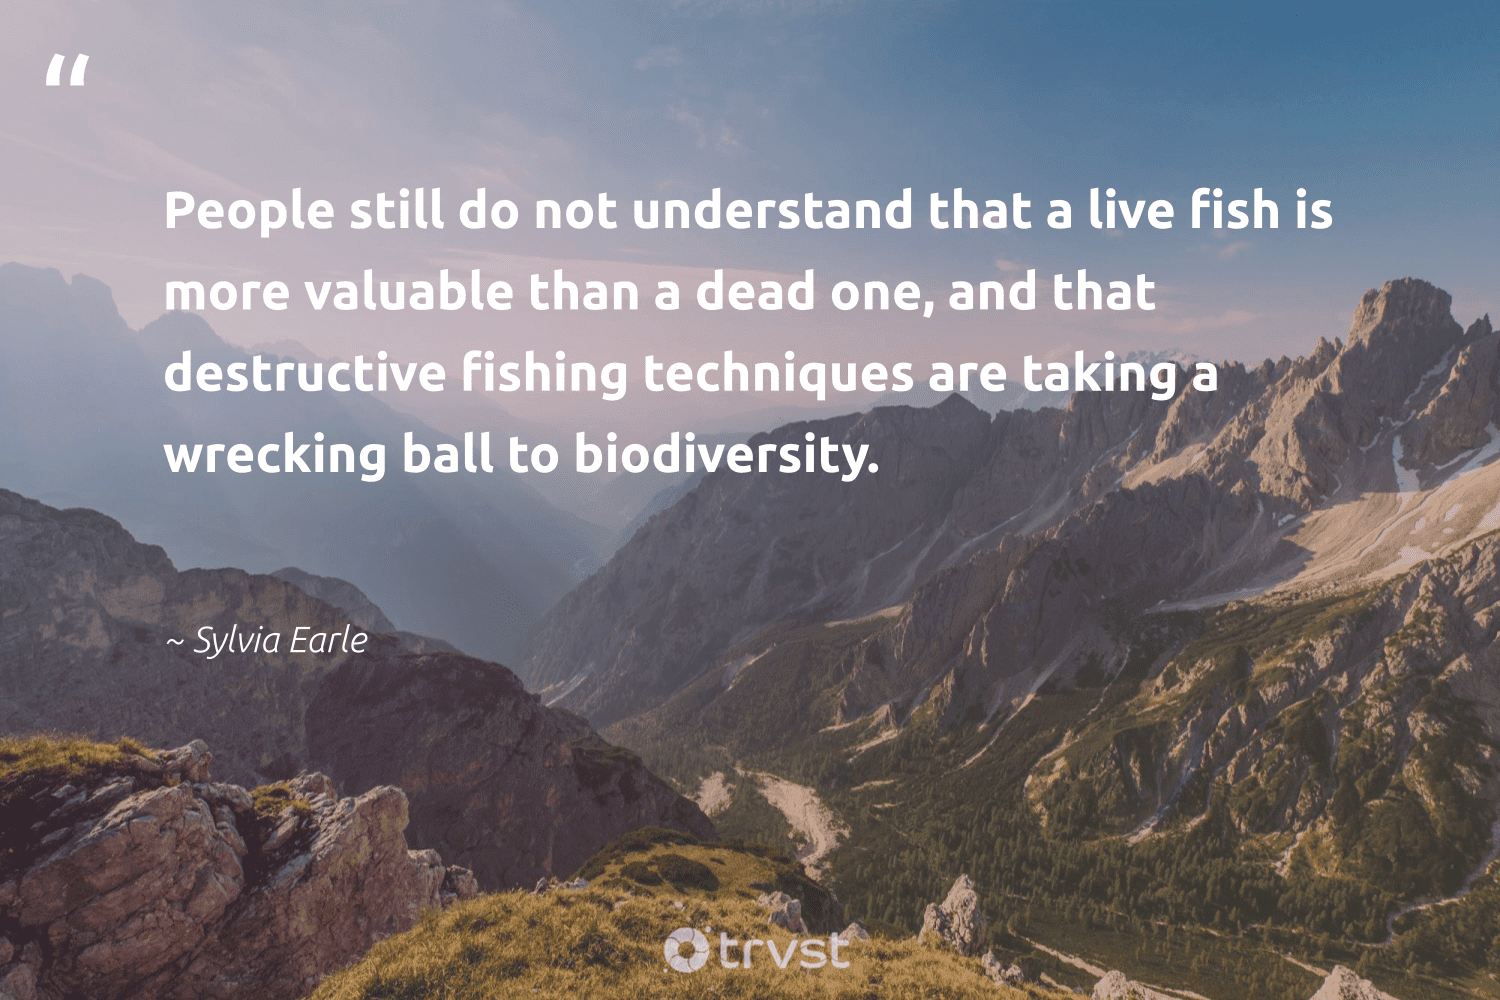 """""""People still do not understand that a live fish is more valuable than a dead one, and that destructive fishing techniques are taking a wrecking ball to biodiversity.""""  - Sylvia Earle #trvst #quotes #biodiversity #fishing #fish #environment #palaeontology #cheetah #ecoconscious #conservation #sanctuary #bird"""